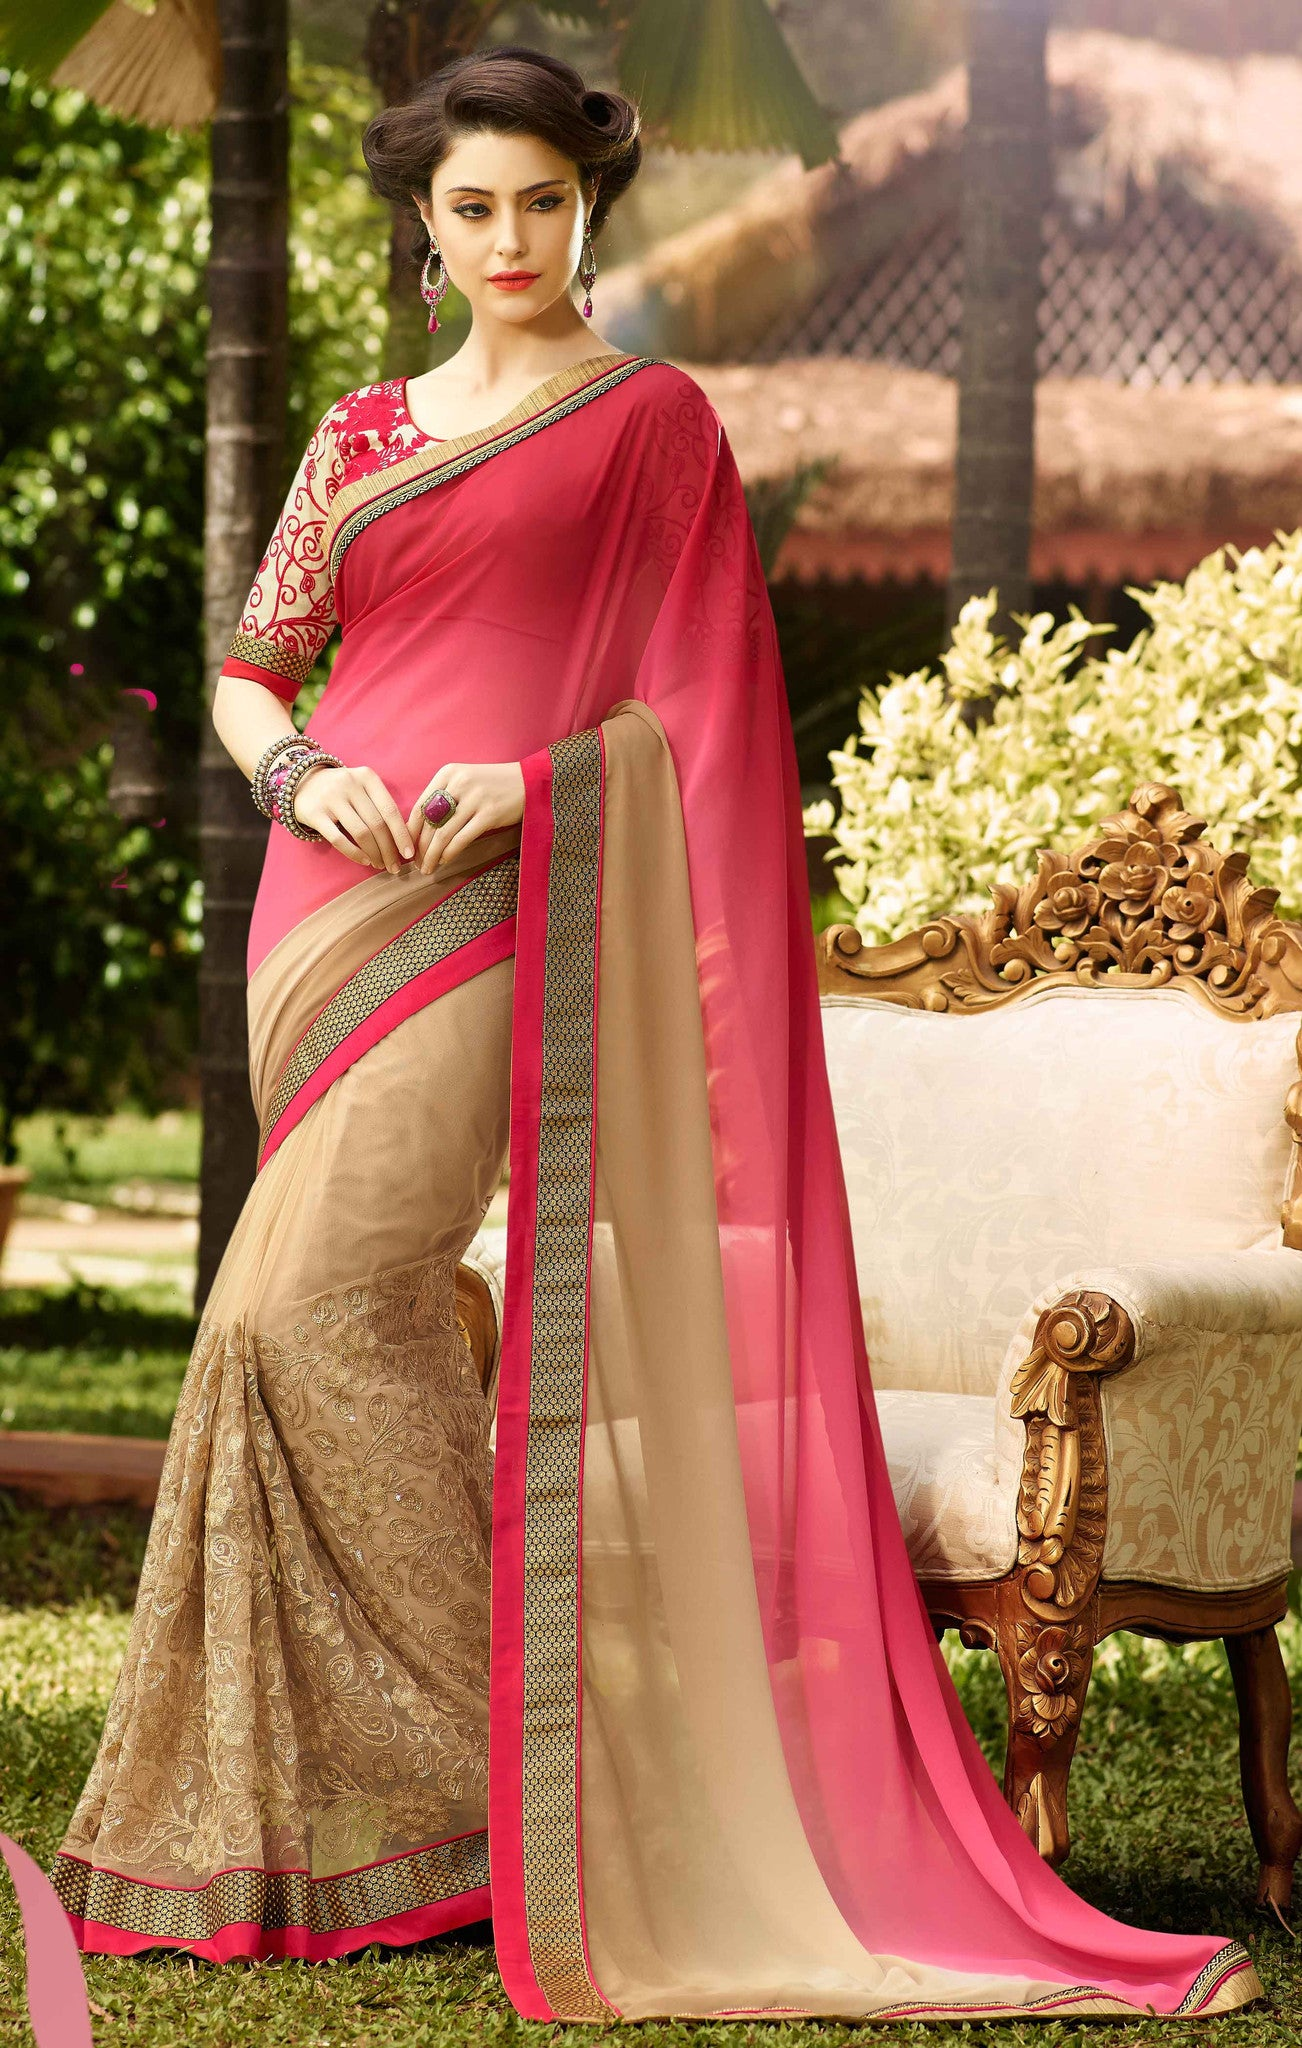 Net Faux Chiffon Saree with Elegant Pink and Golden - Boutique4India Inc.